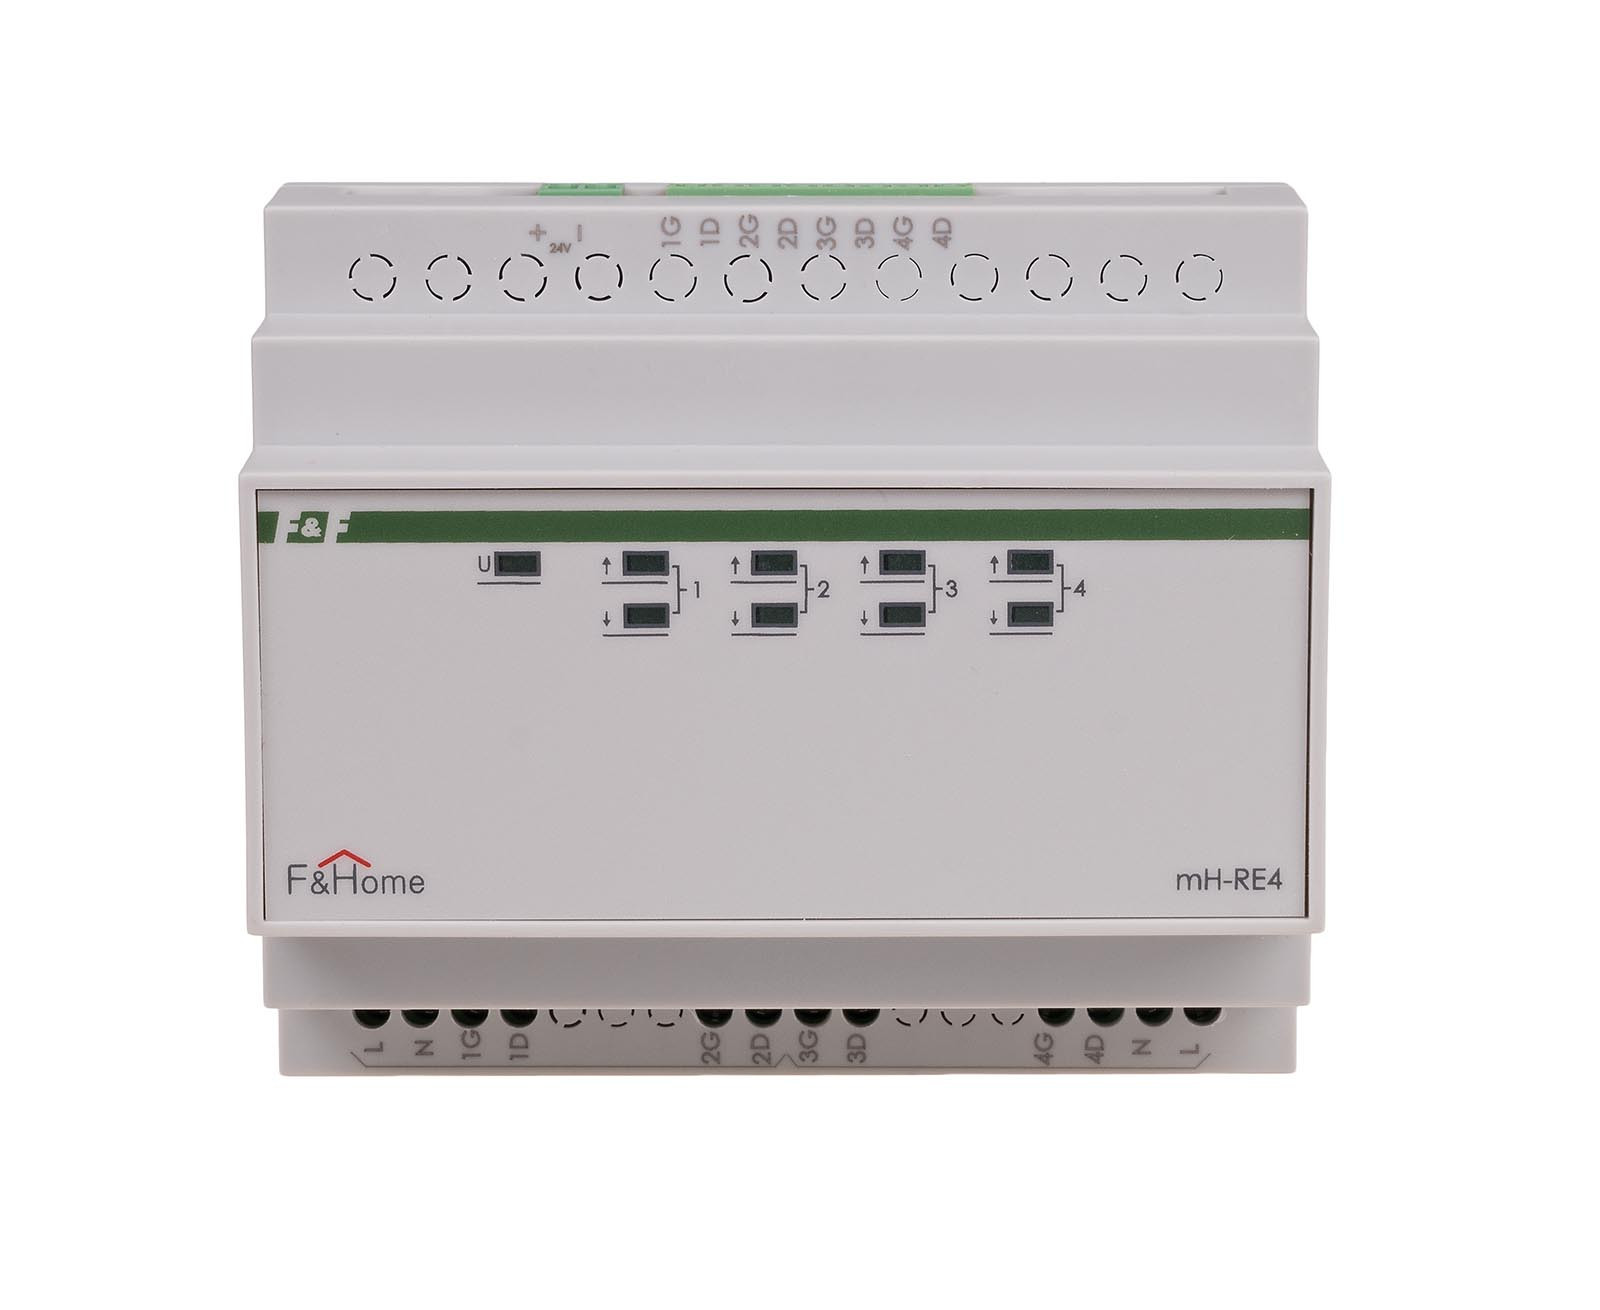 Relay Switch Network